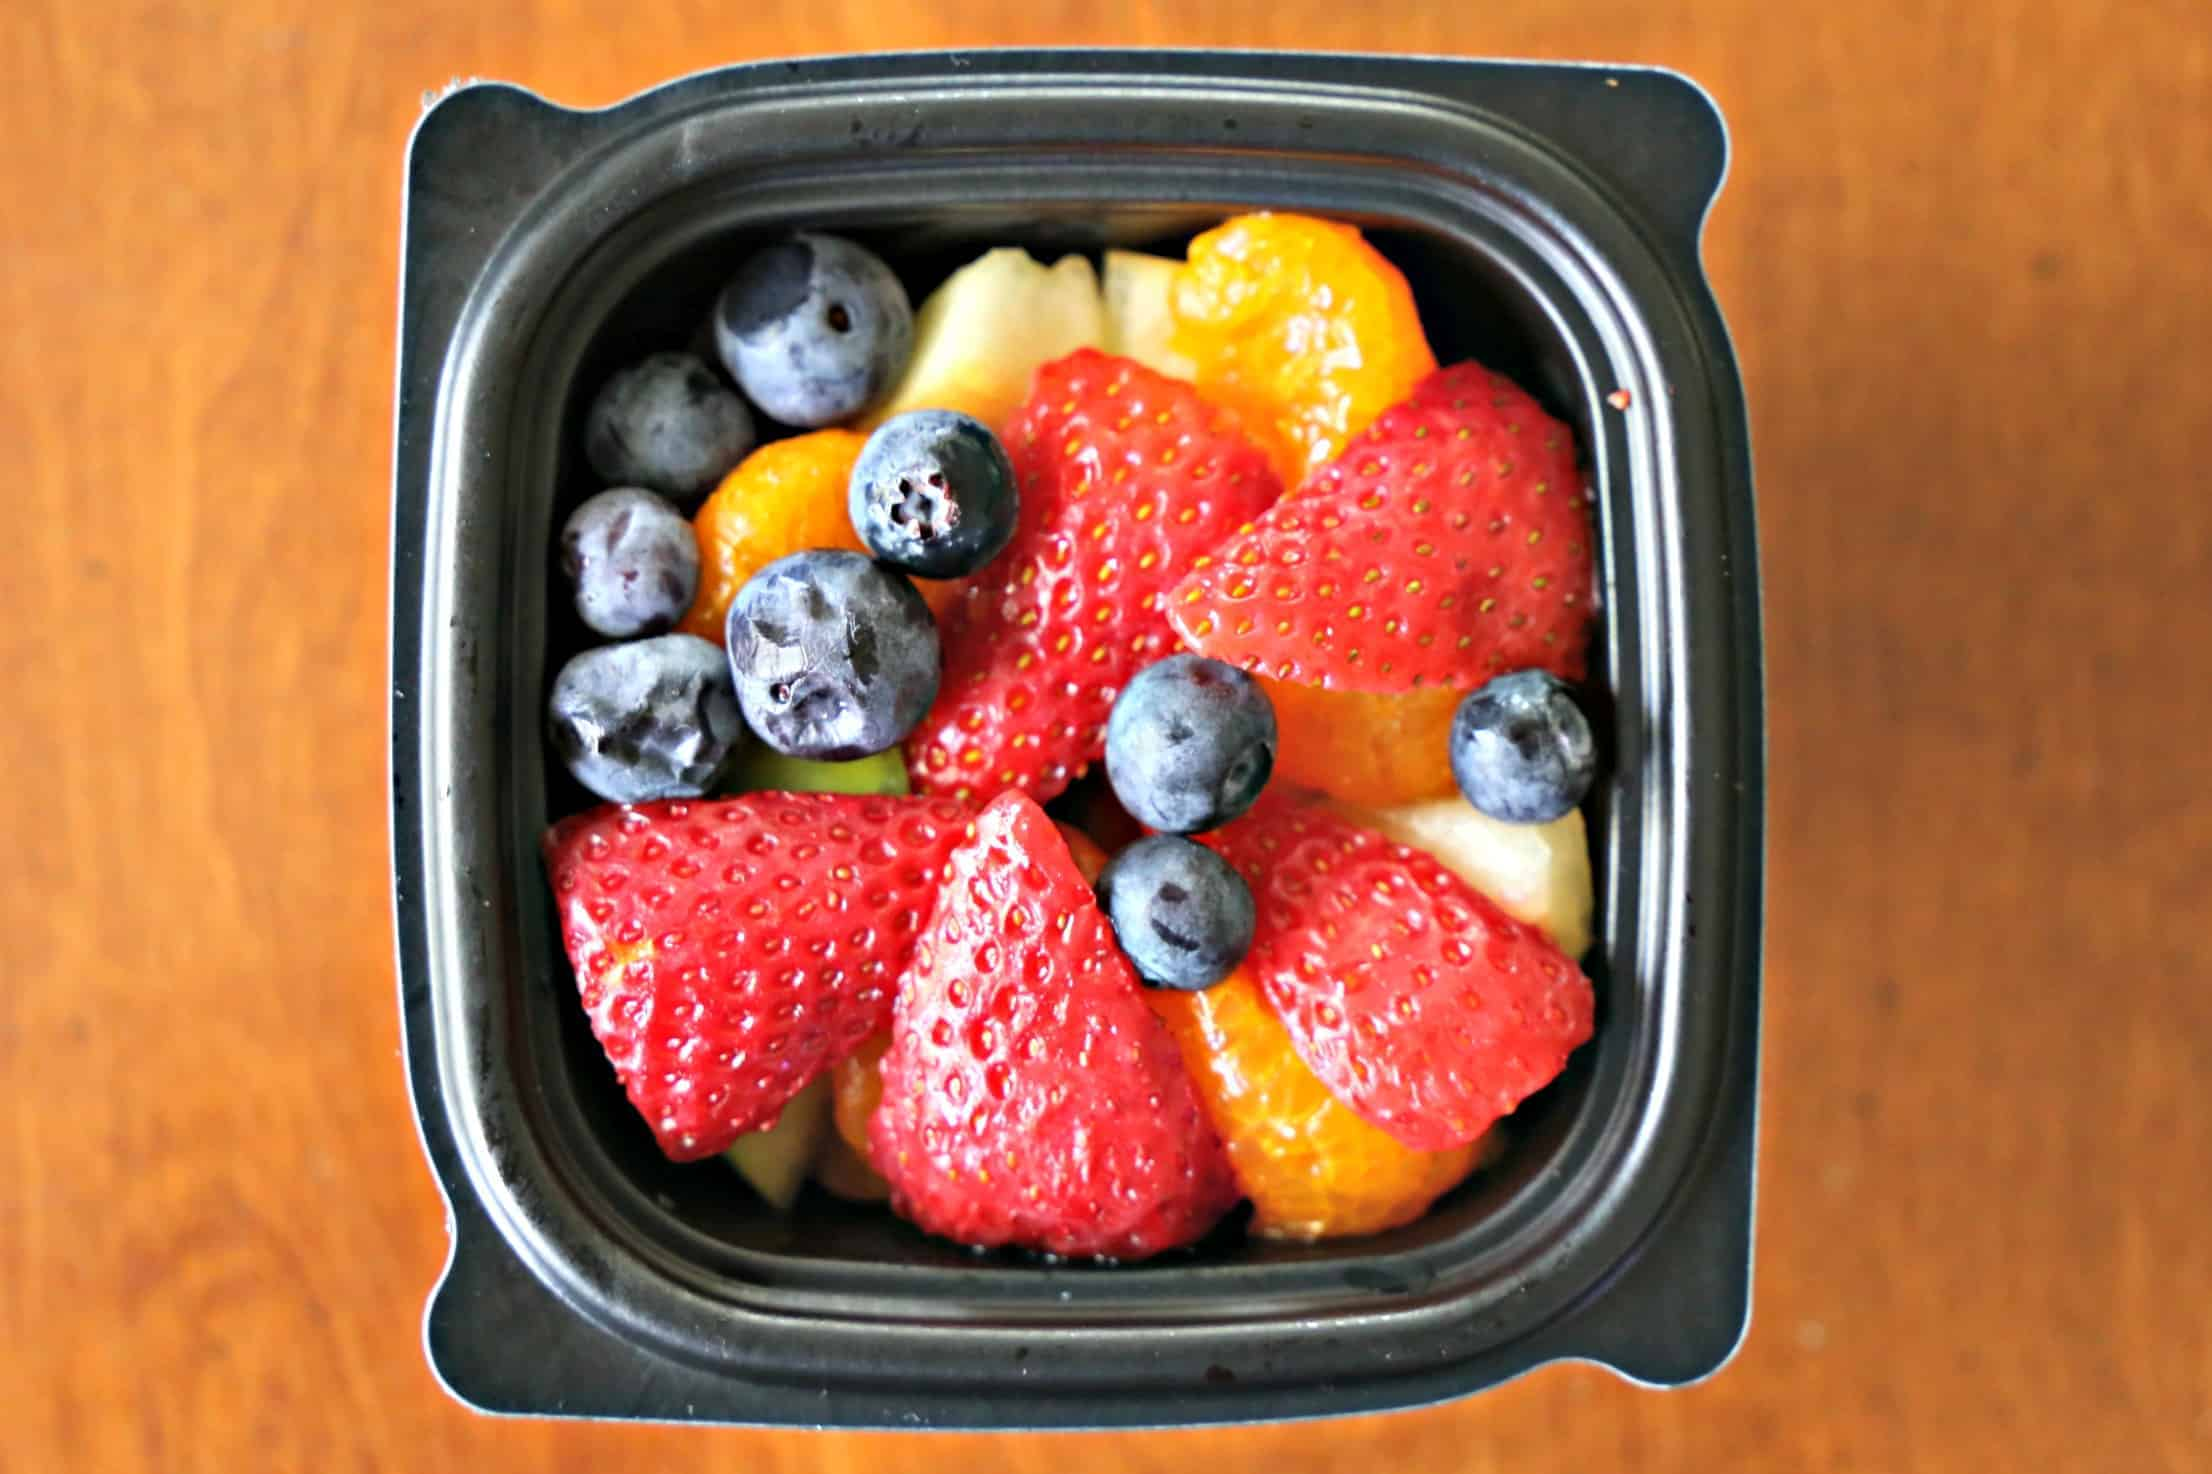 Small fruit cup with strawberries, mandarin segments, and blueberries.